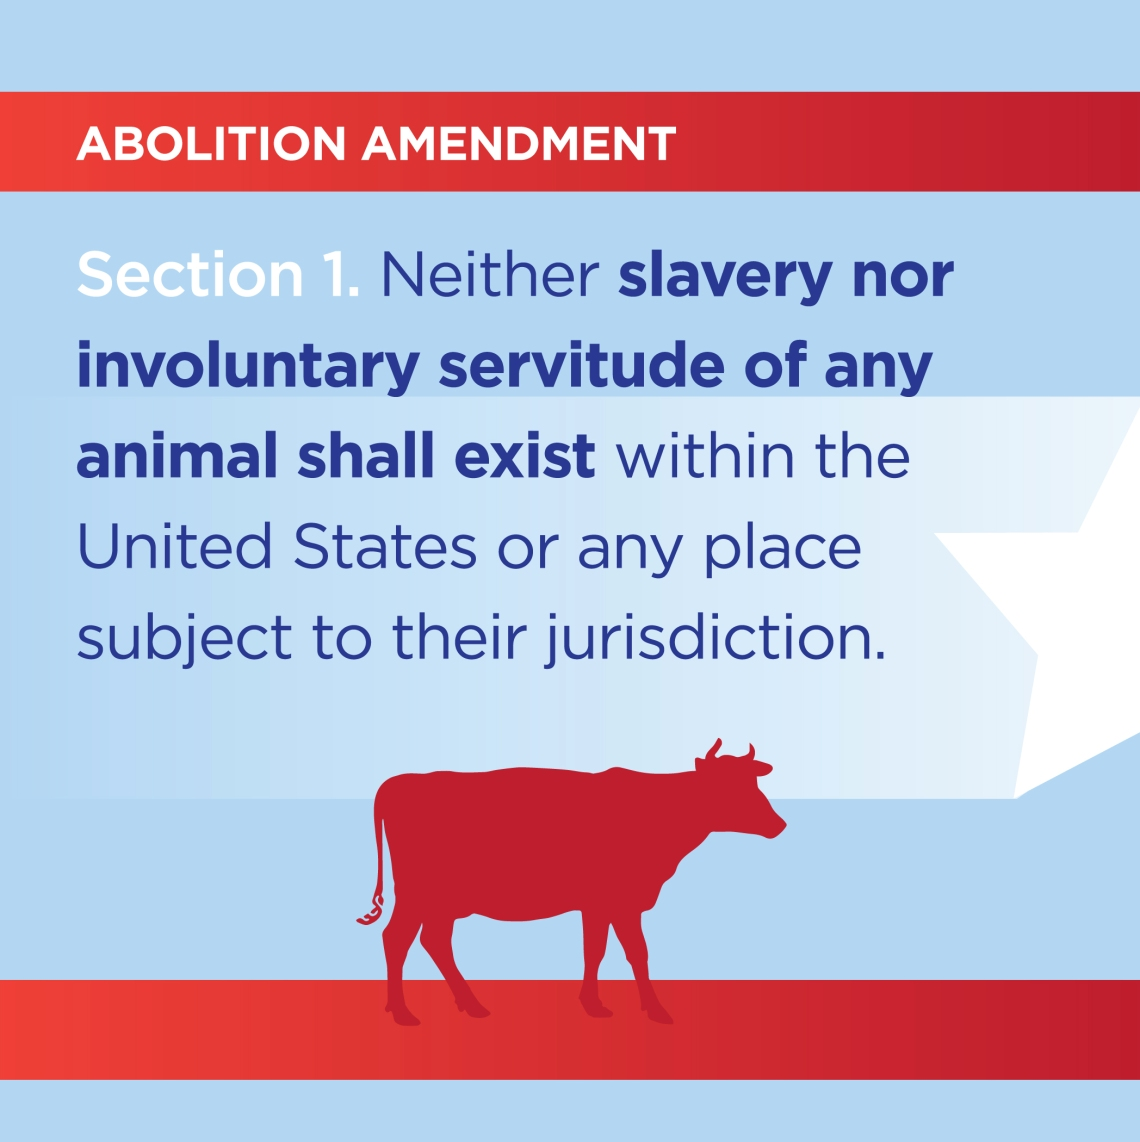 Abolition Amendment - image by Chris Censullo